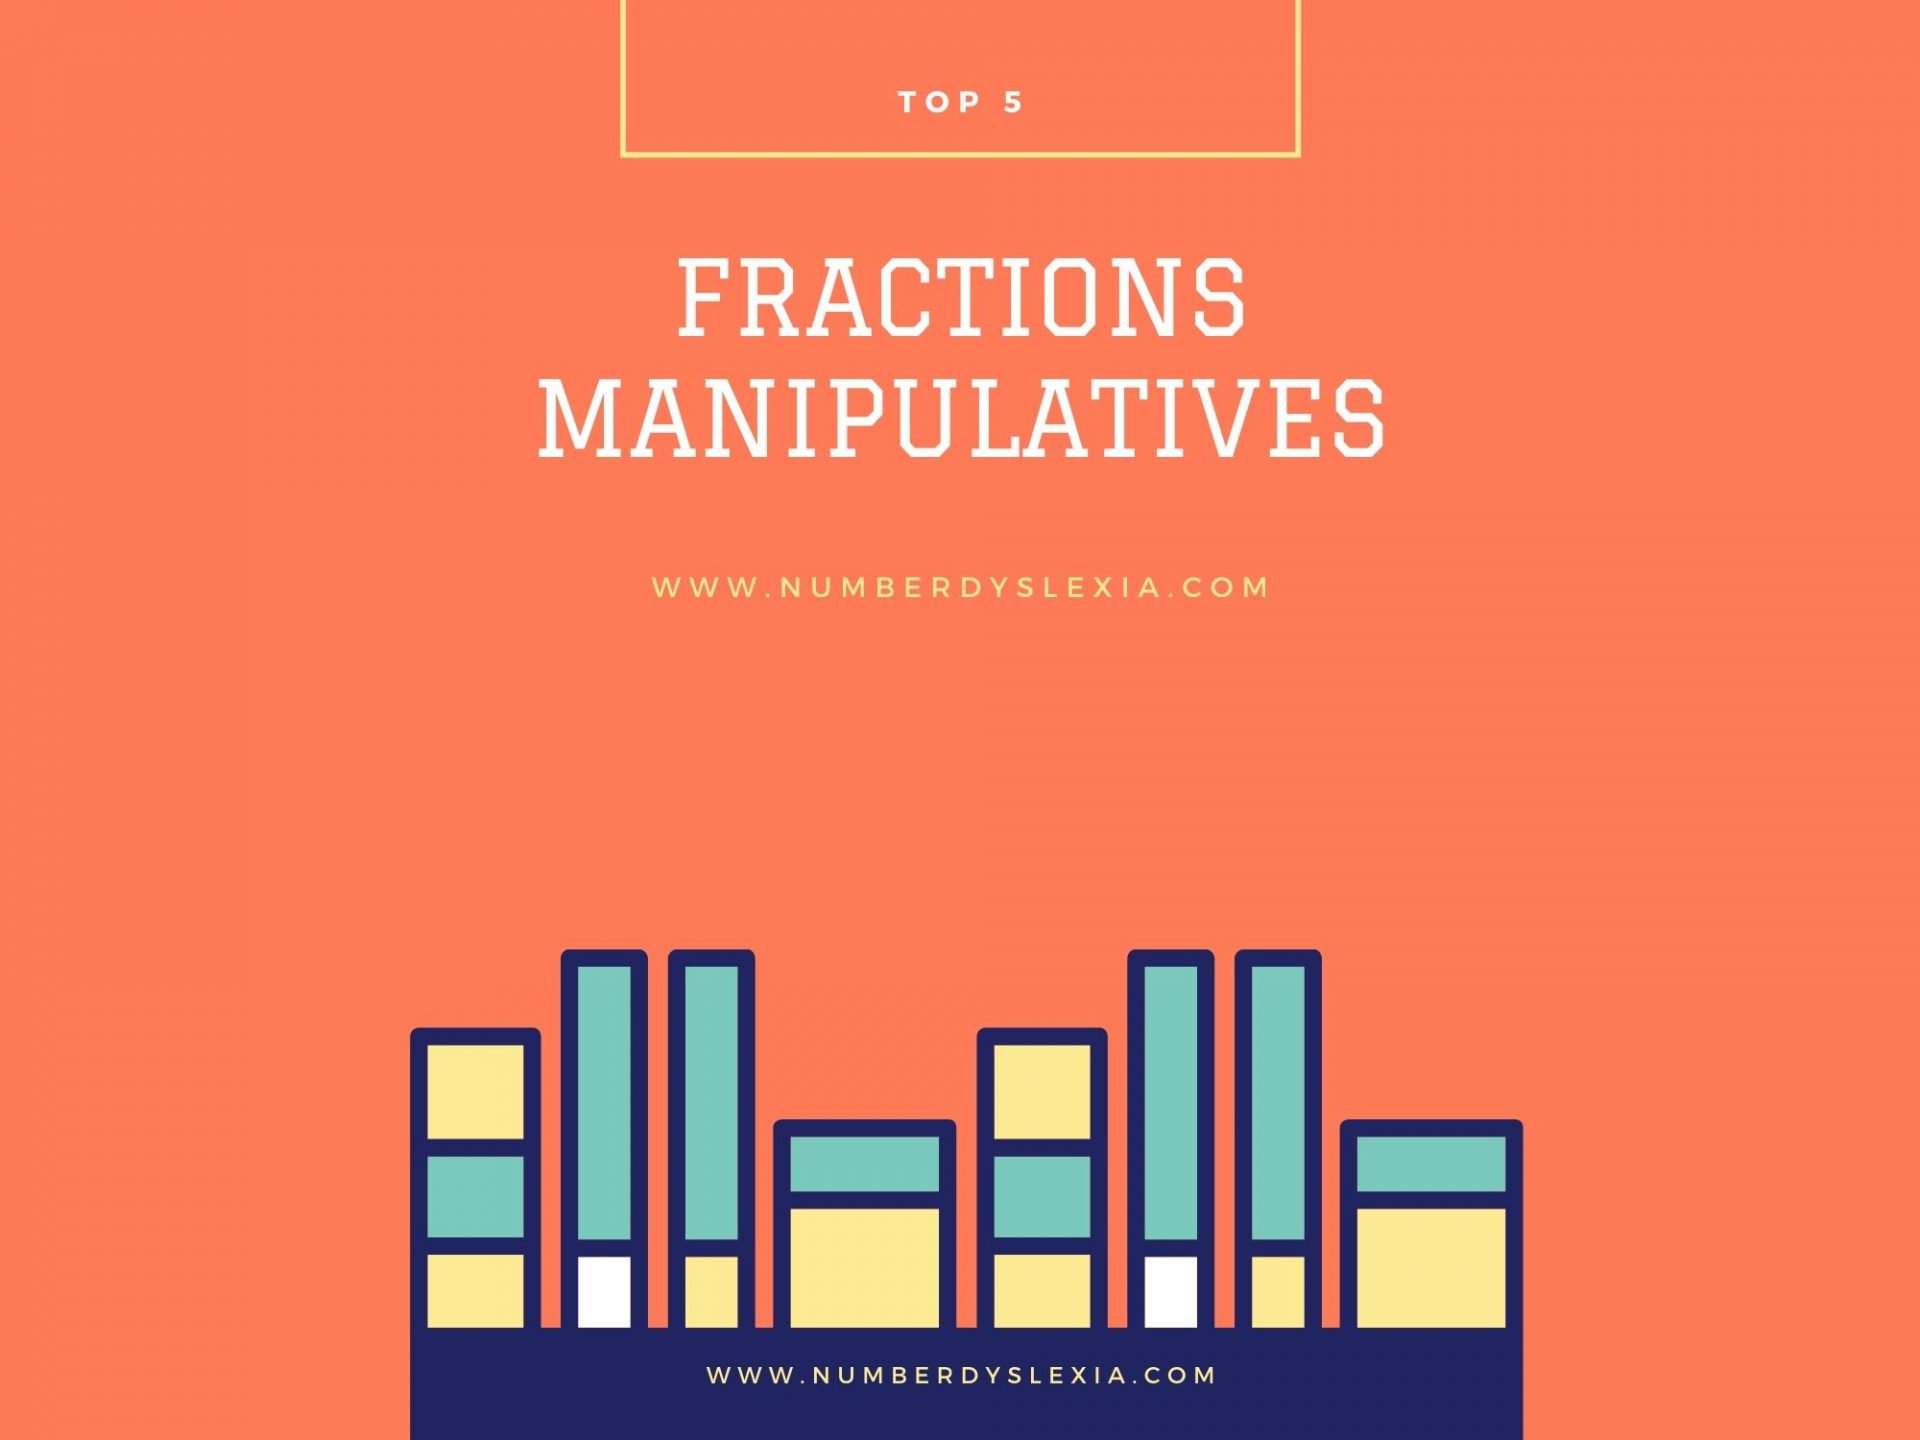 list of top 5 fraction manipulatives